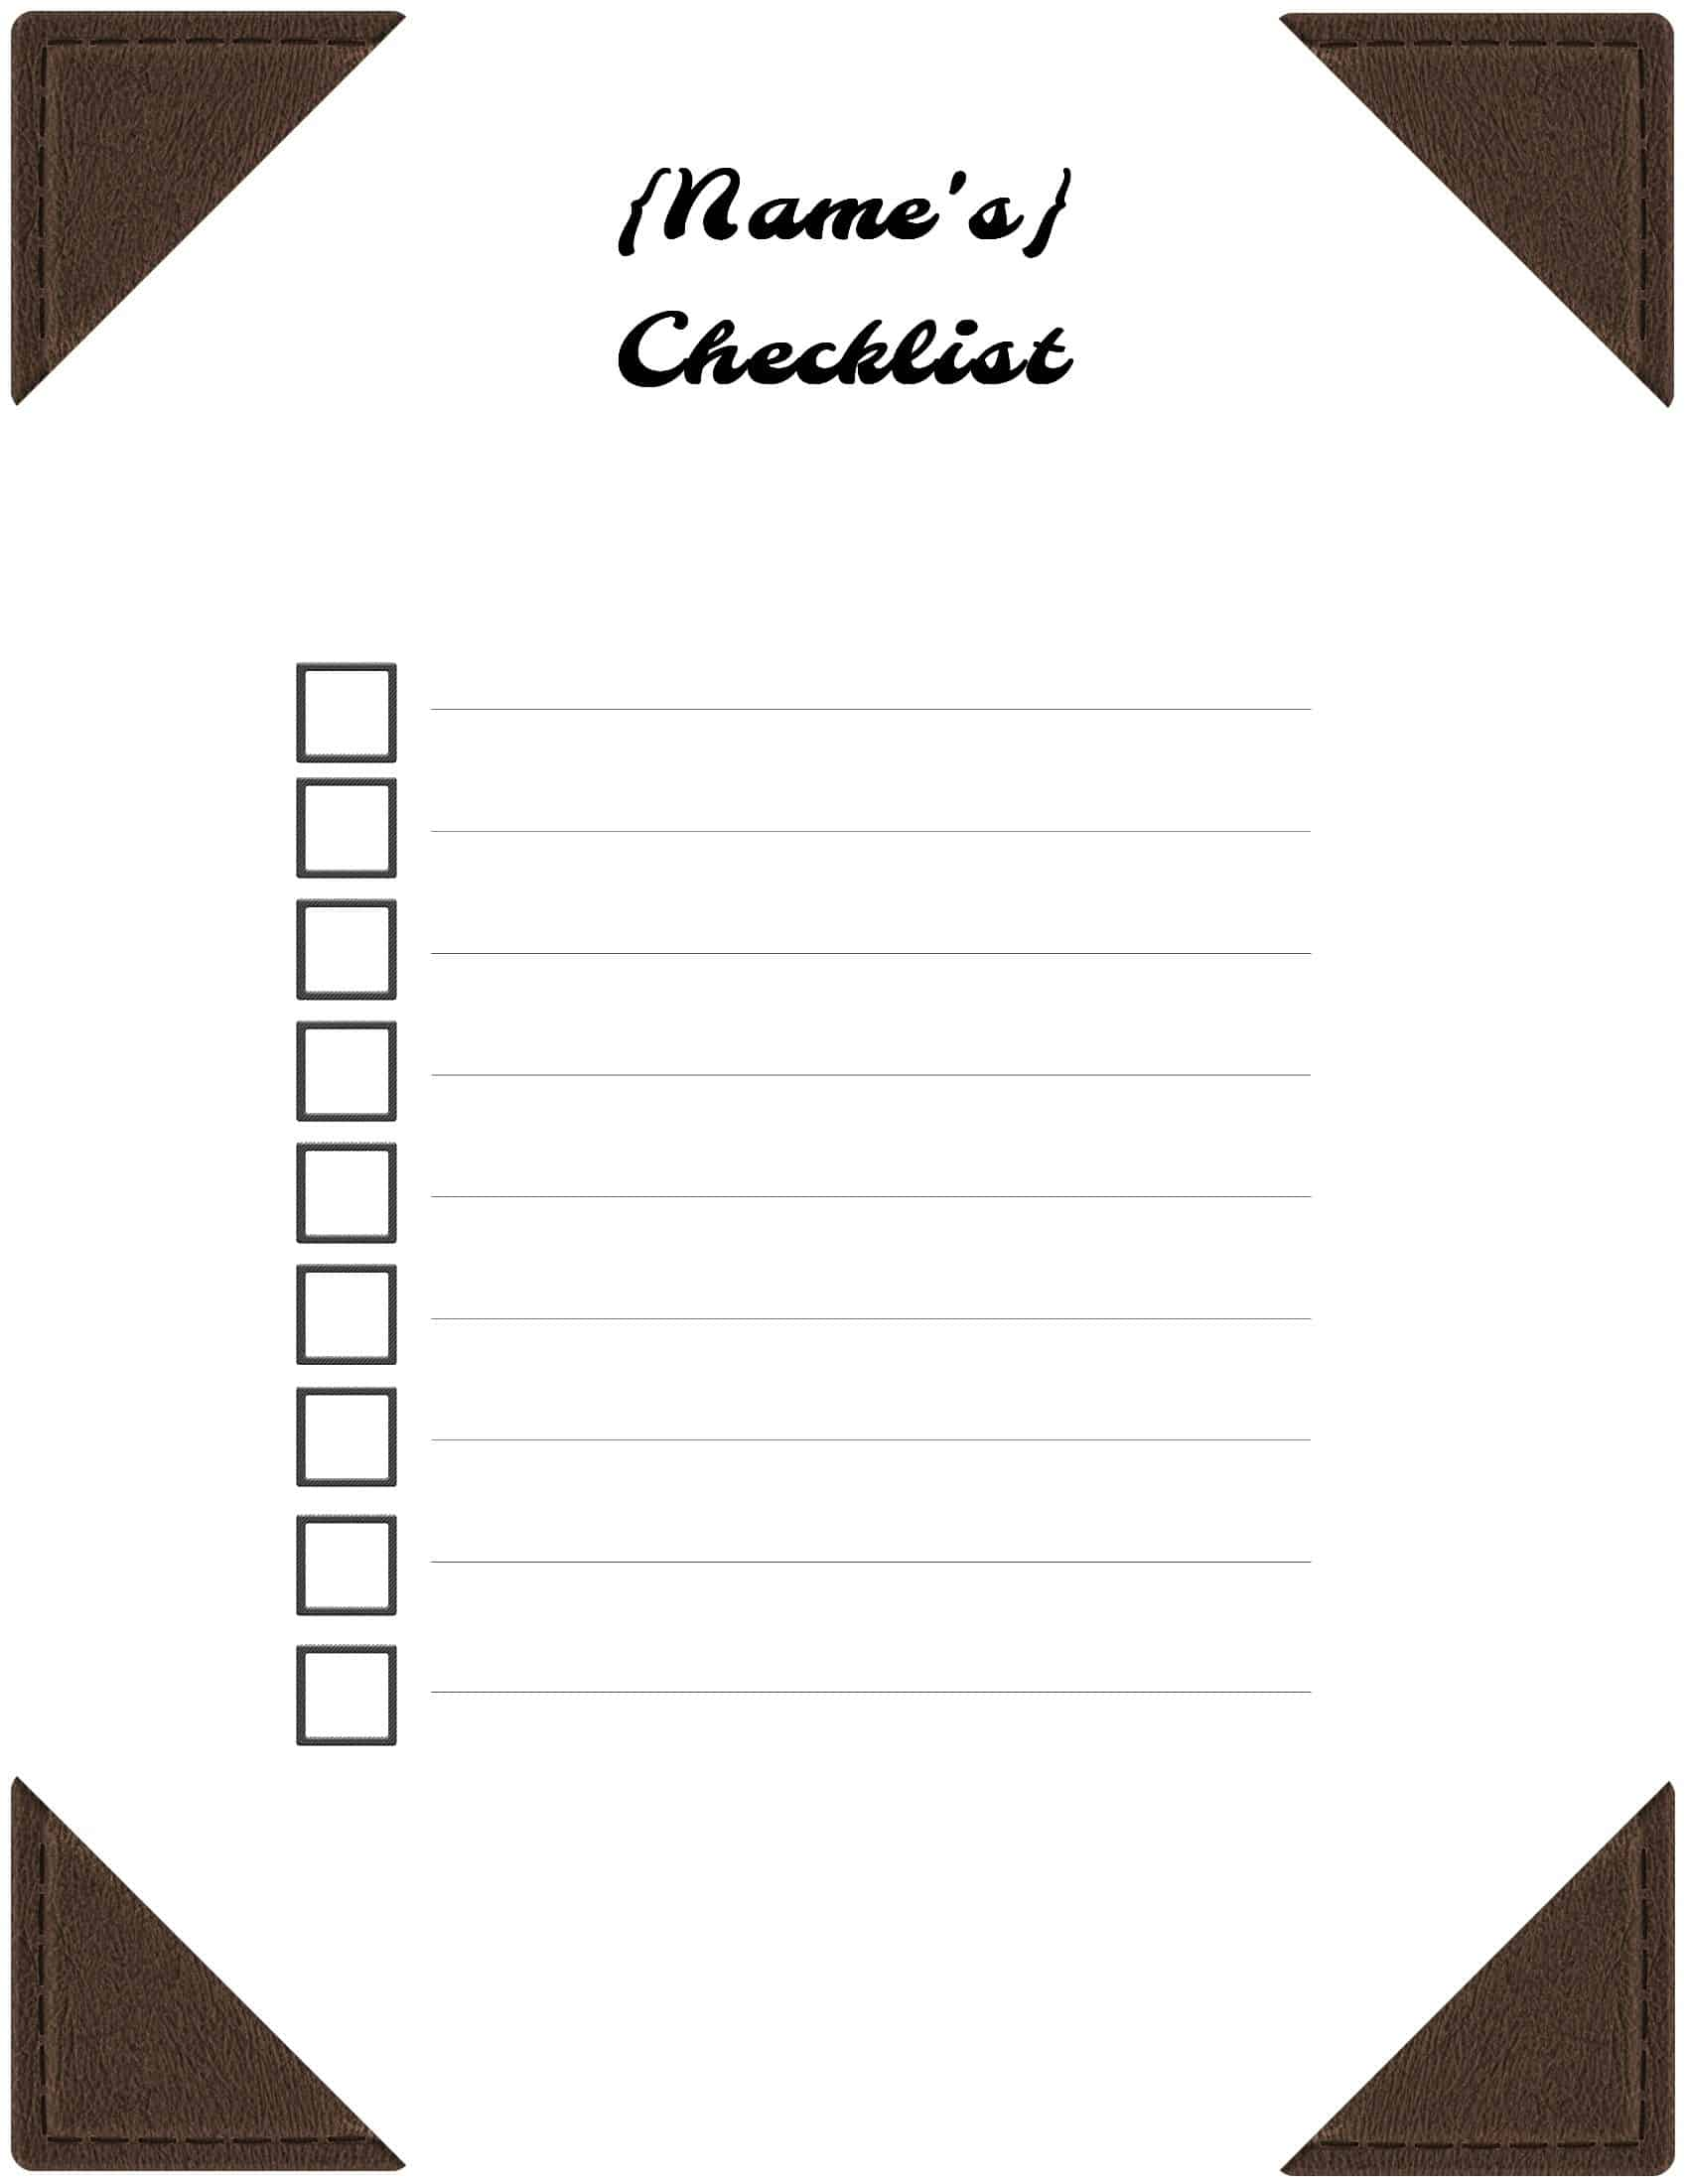 checklist in word